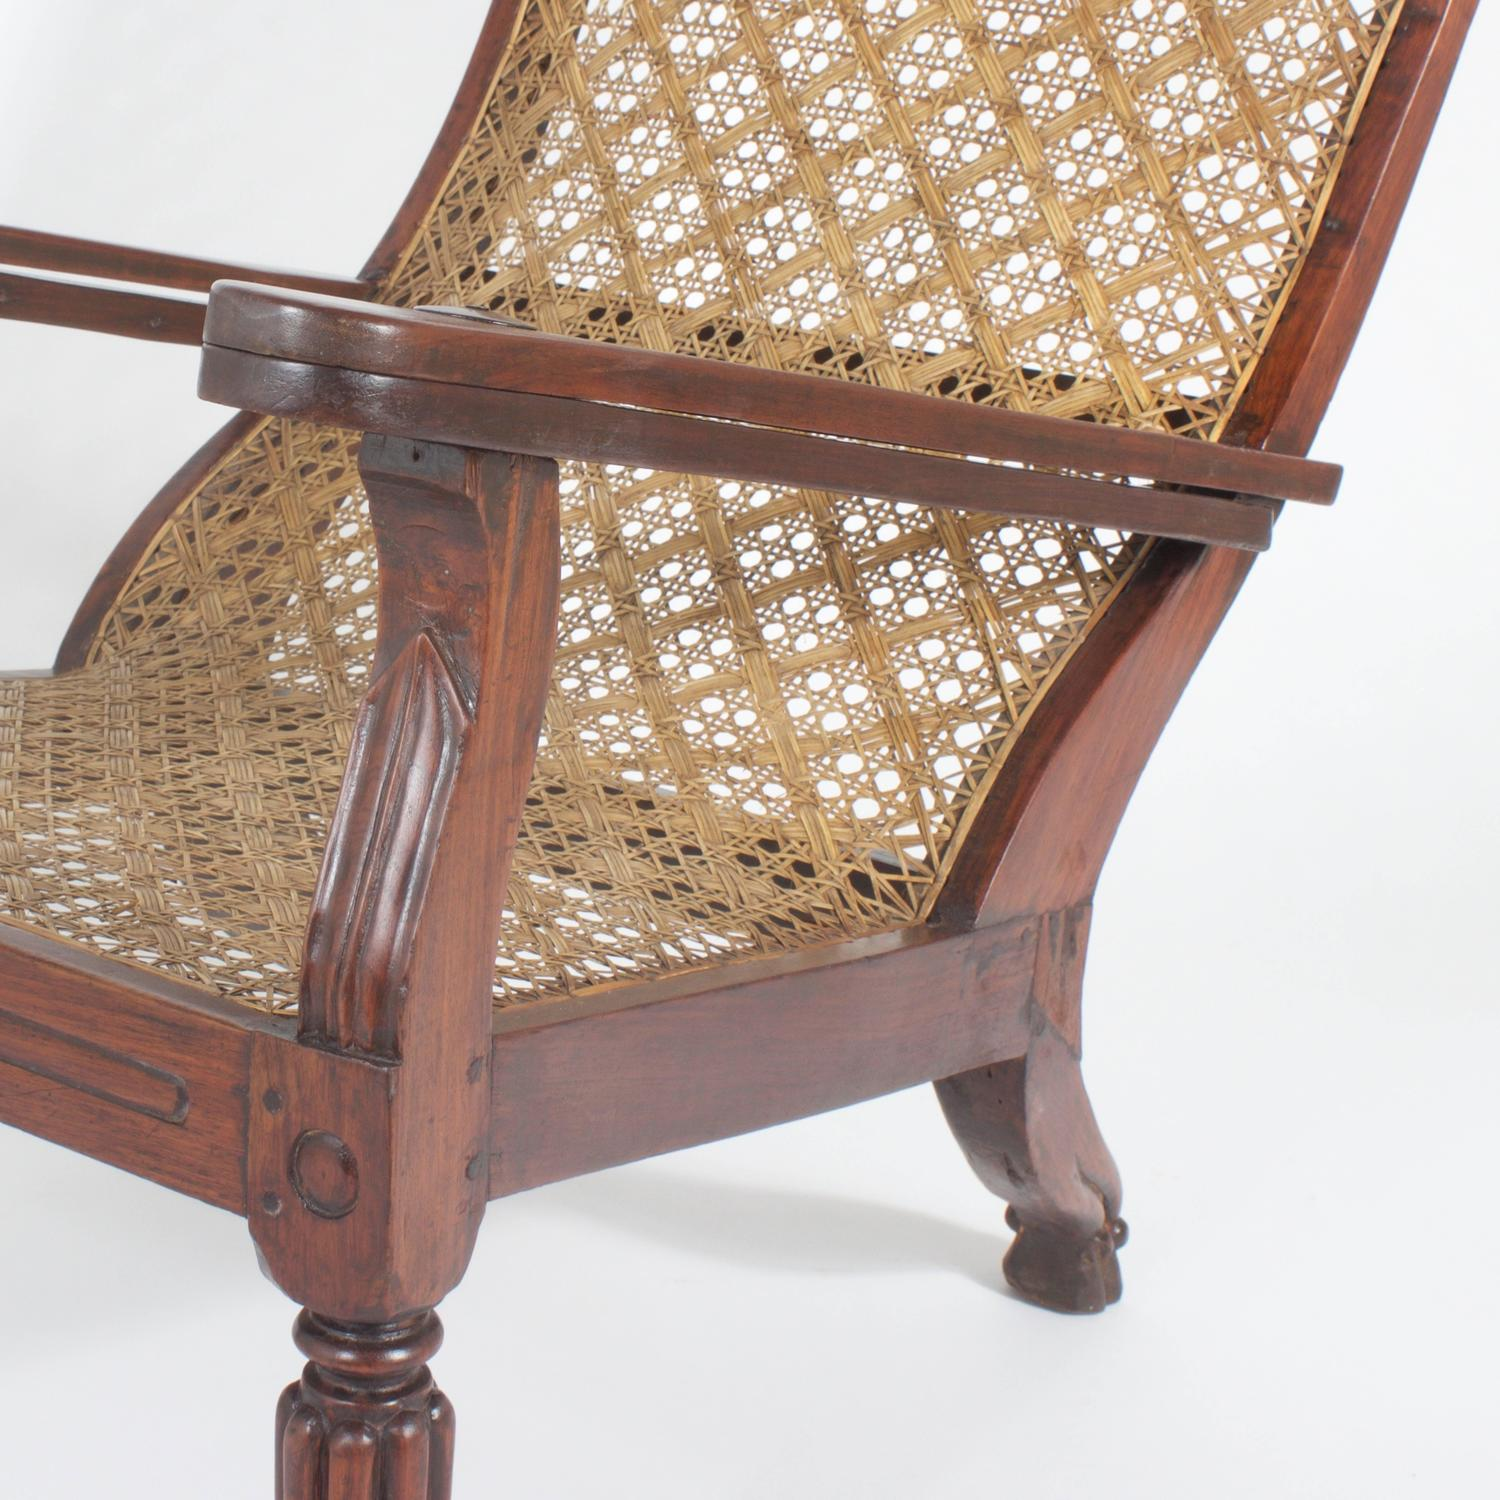 plantation style chairs chair for hemorrhoids 19th century planters or sale at 1stdibs